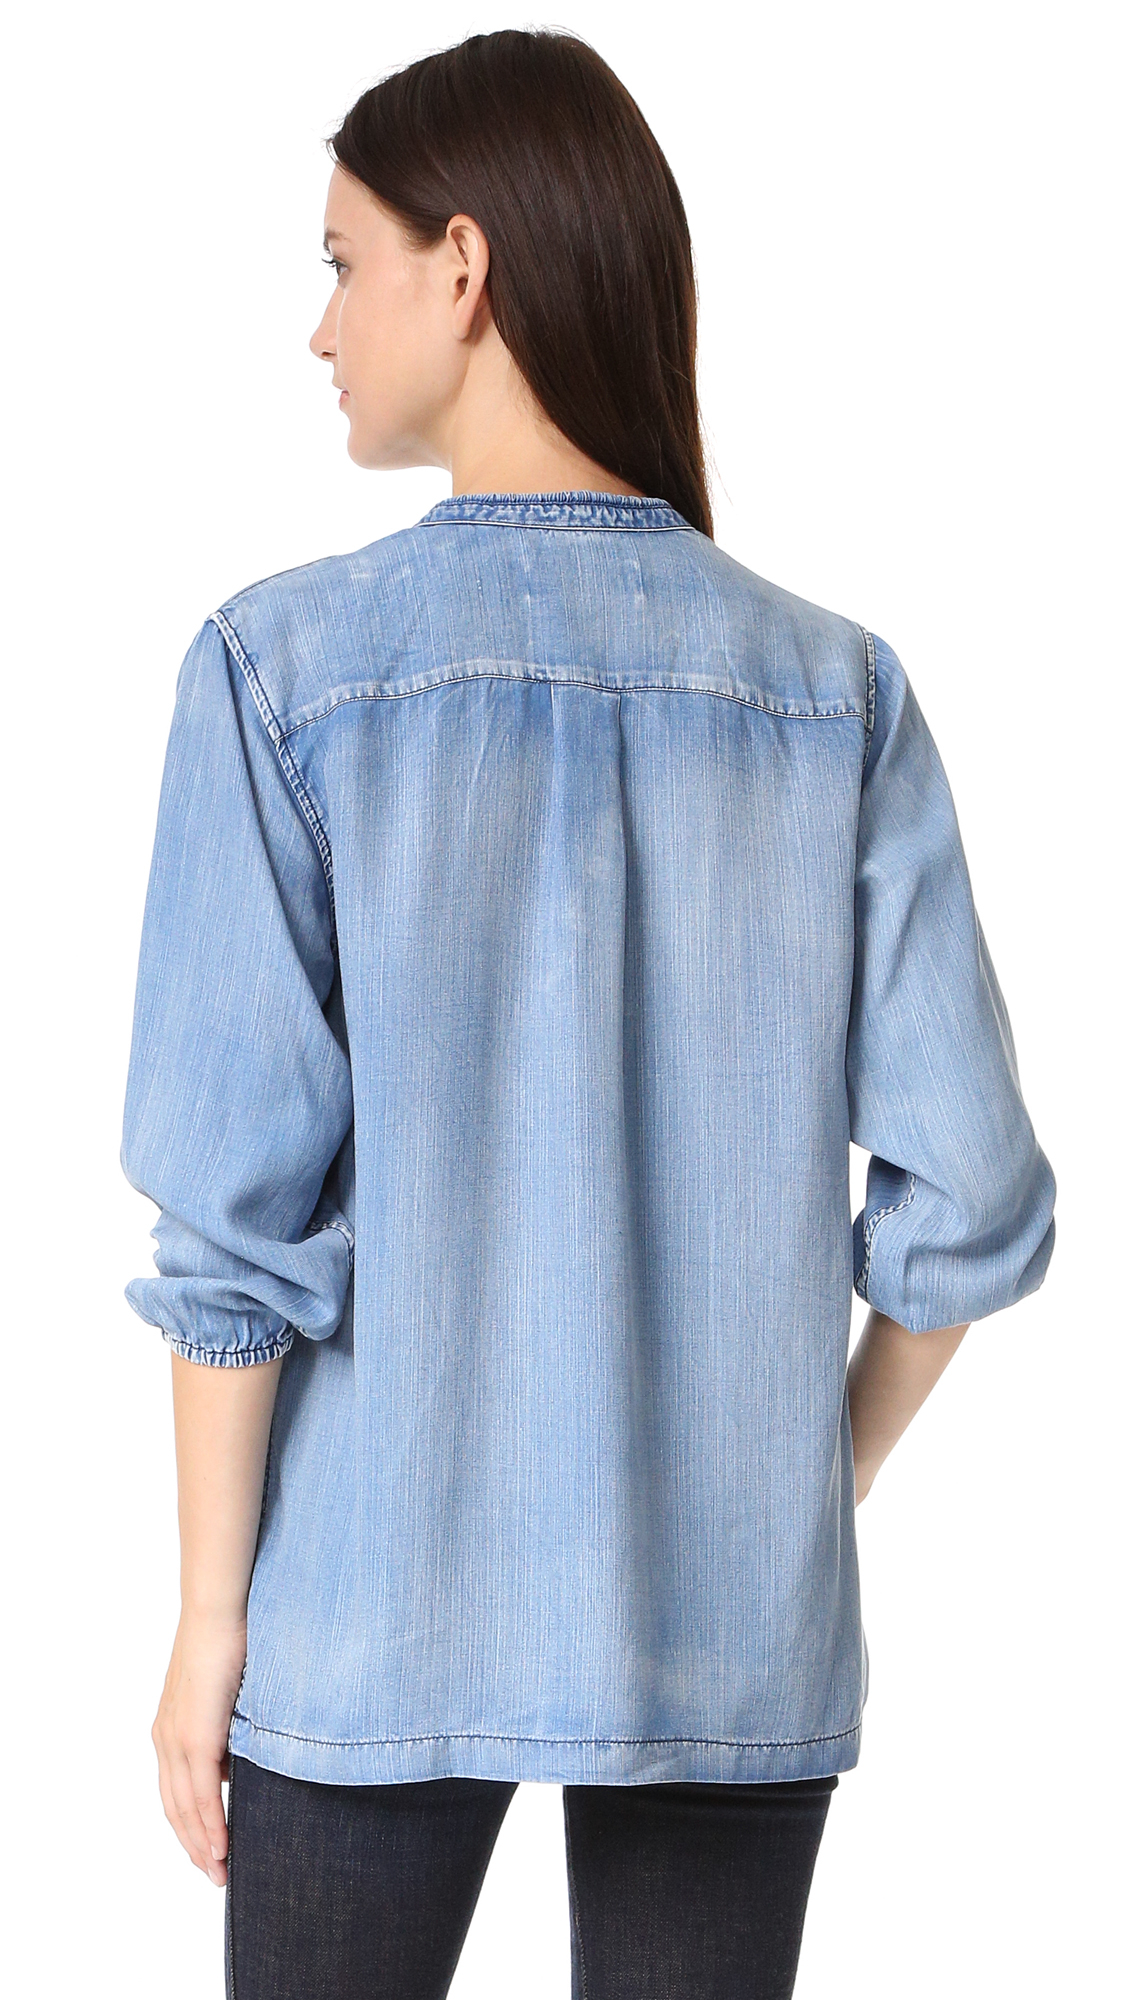 Lyst scotch soda chambray top with lace closure for Chambray top